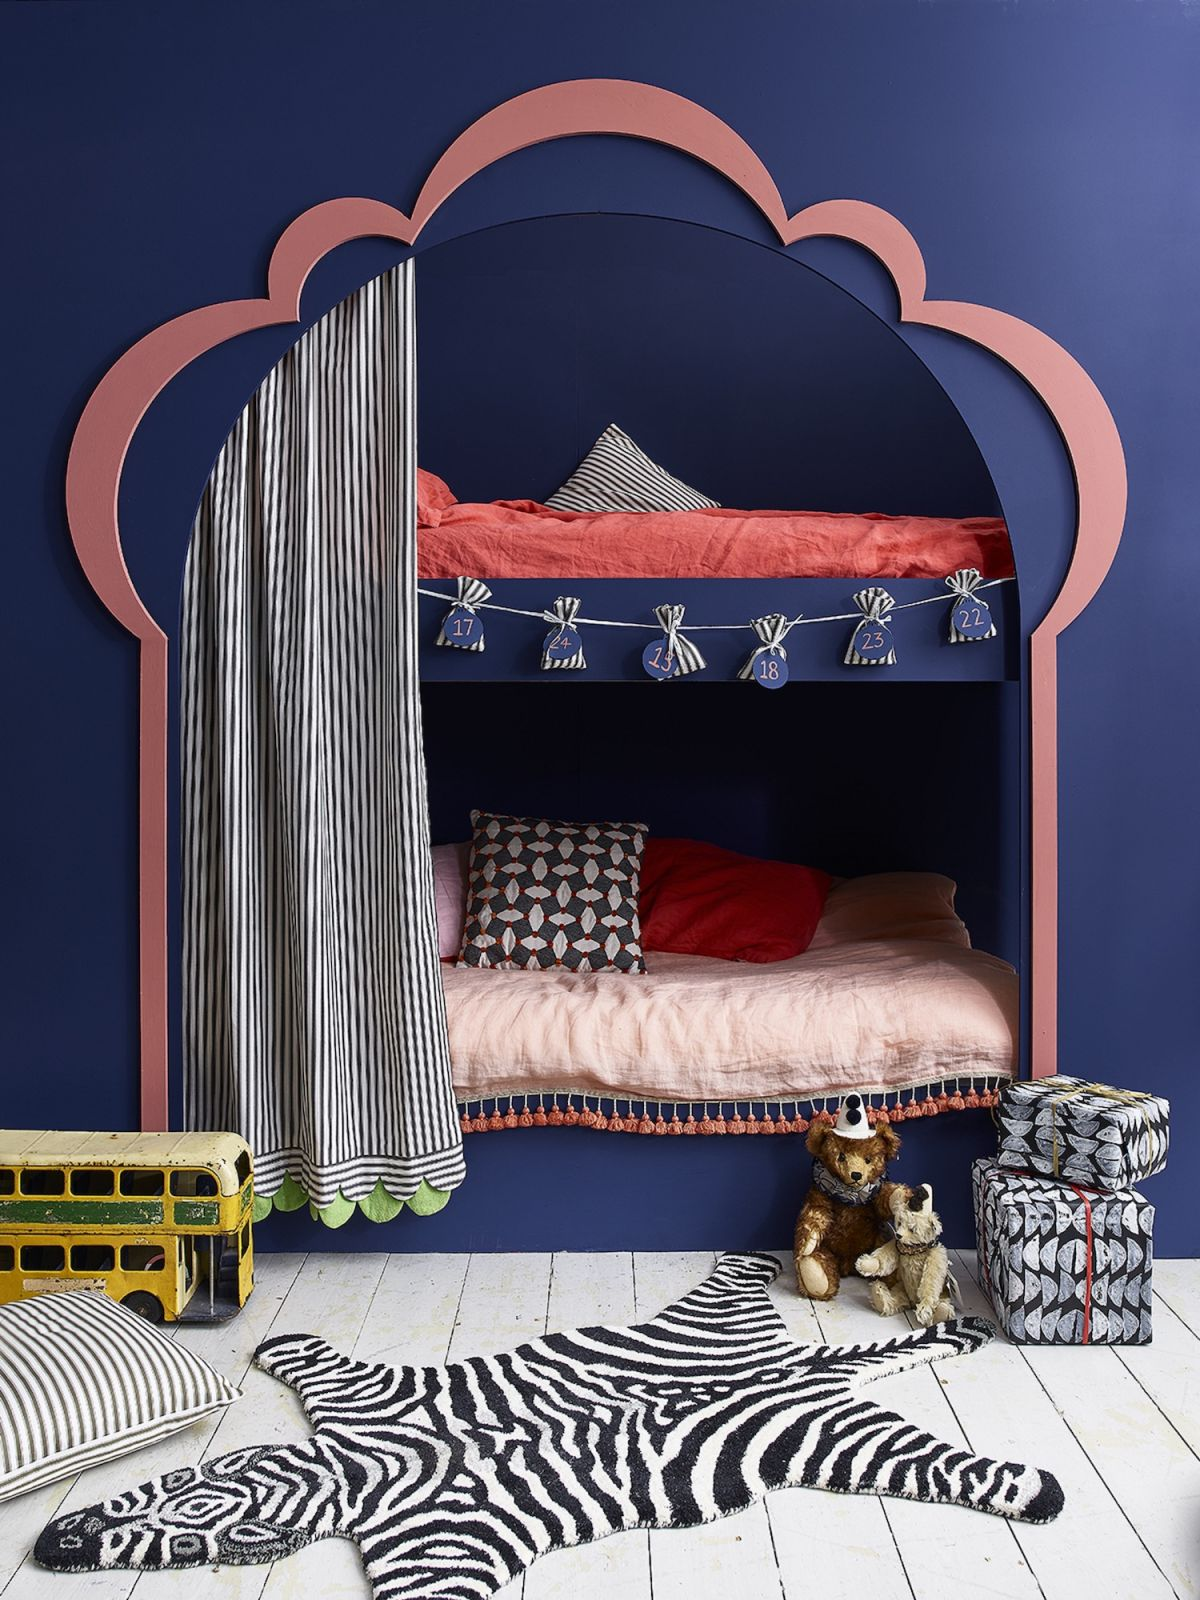 B Q Bunk Beds Online Discount Shop For Electronics Apparel Toys Books Games Computers Shoes Jewelry Watches Baby Products Sports Outdoors Office Products Bed Bath Furniture Tools Hardware Automotive Parts